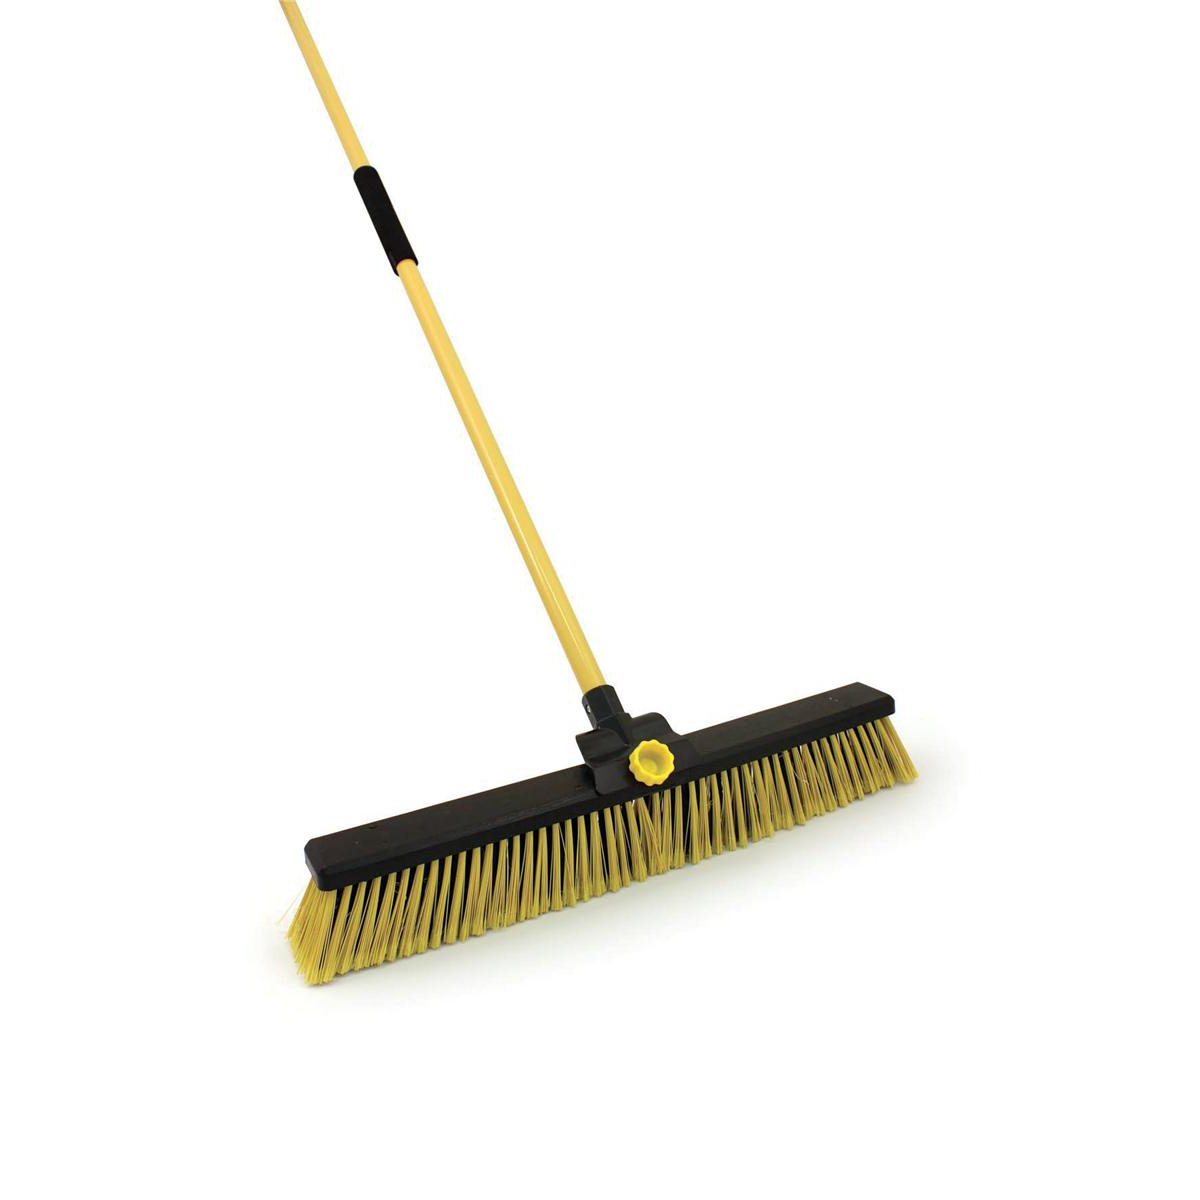 Mops & Buckets Bentley Broom Bulldozer Dual Purpose Soft/Stiff PVC Yard Broom & Metal Handle 24inch Ref SPC/HQ16